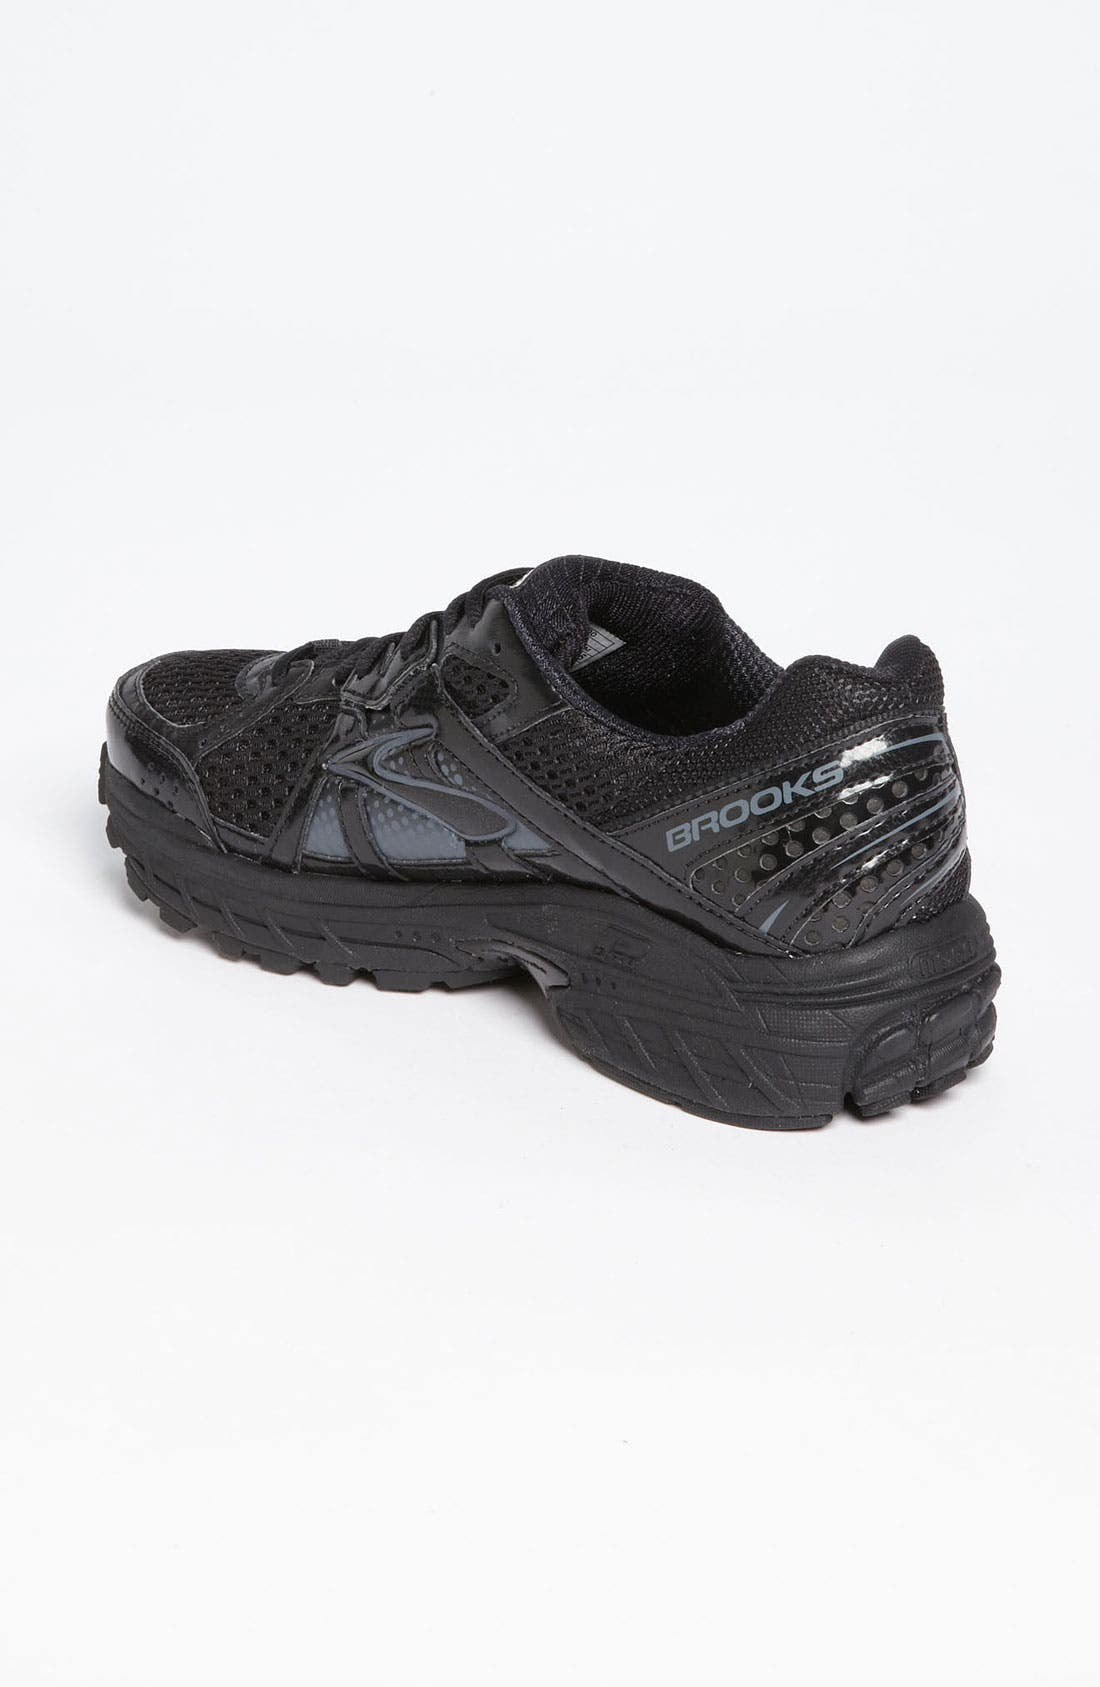 'Adrenaline GTS 13' Running Shoe,                             Alternate thumbnail 4, color,                             090